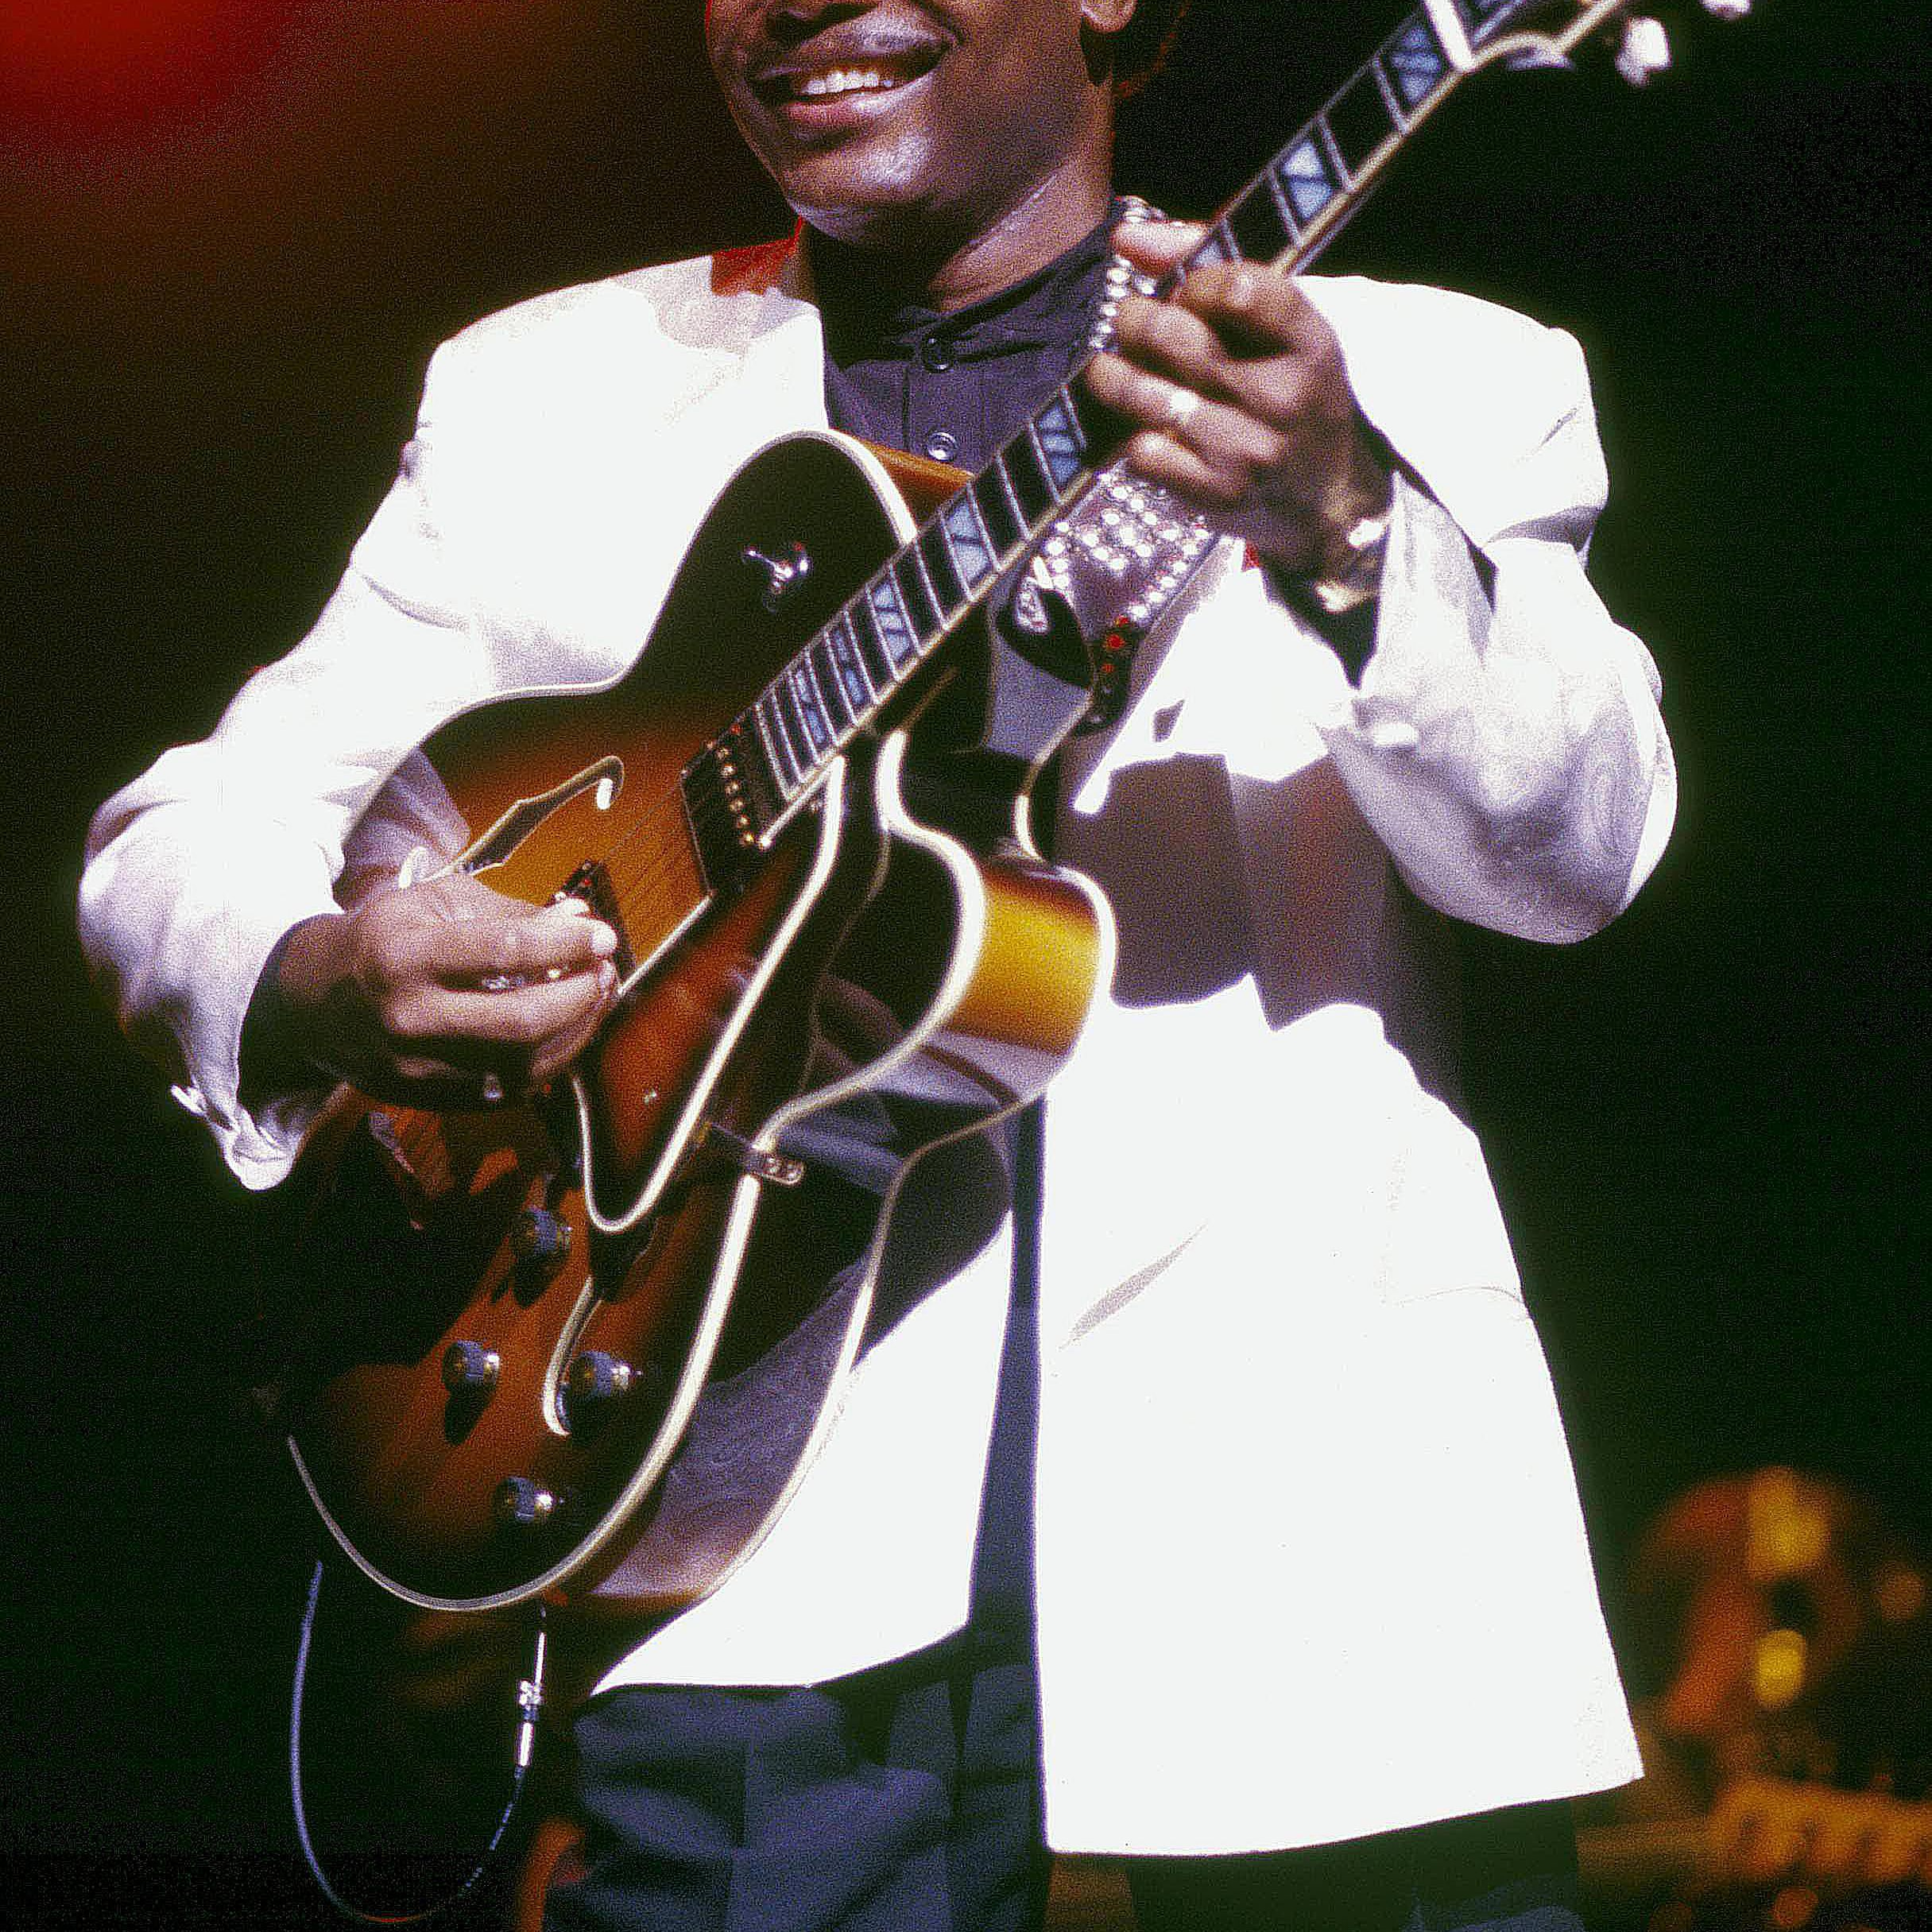 George Benson playing a guitar